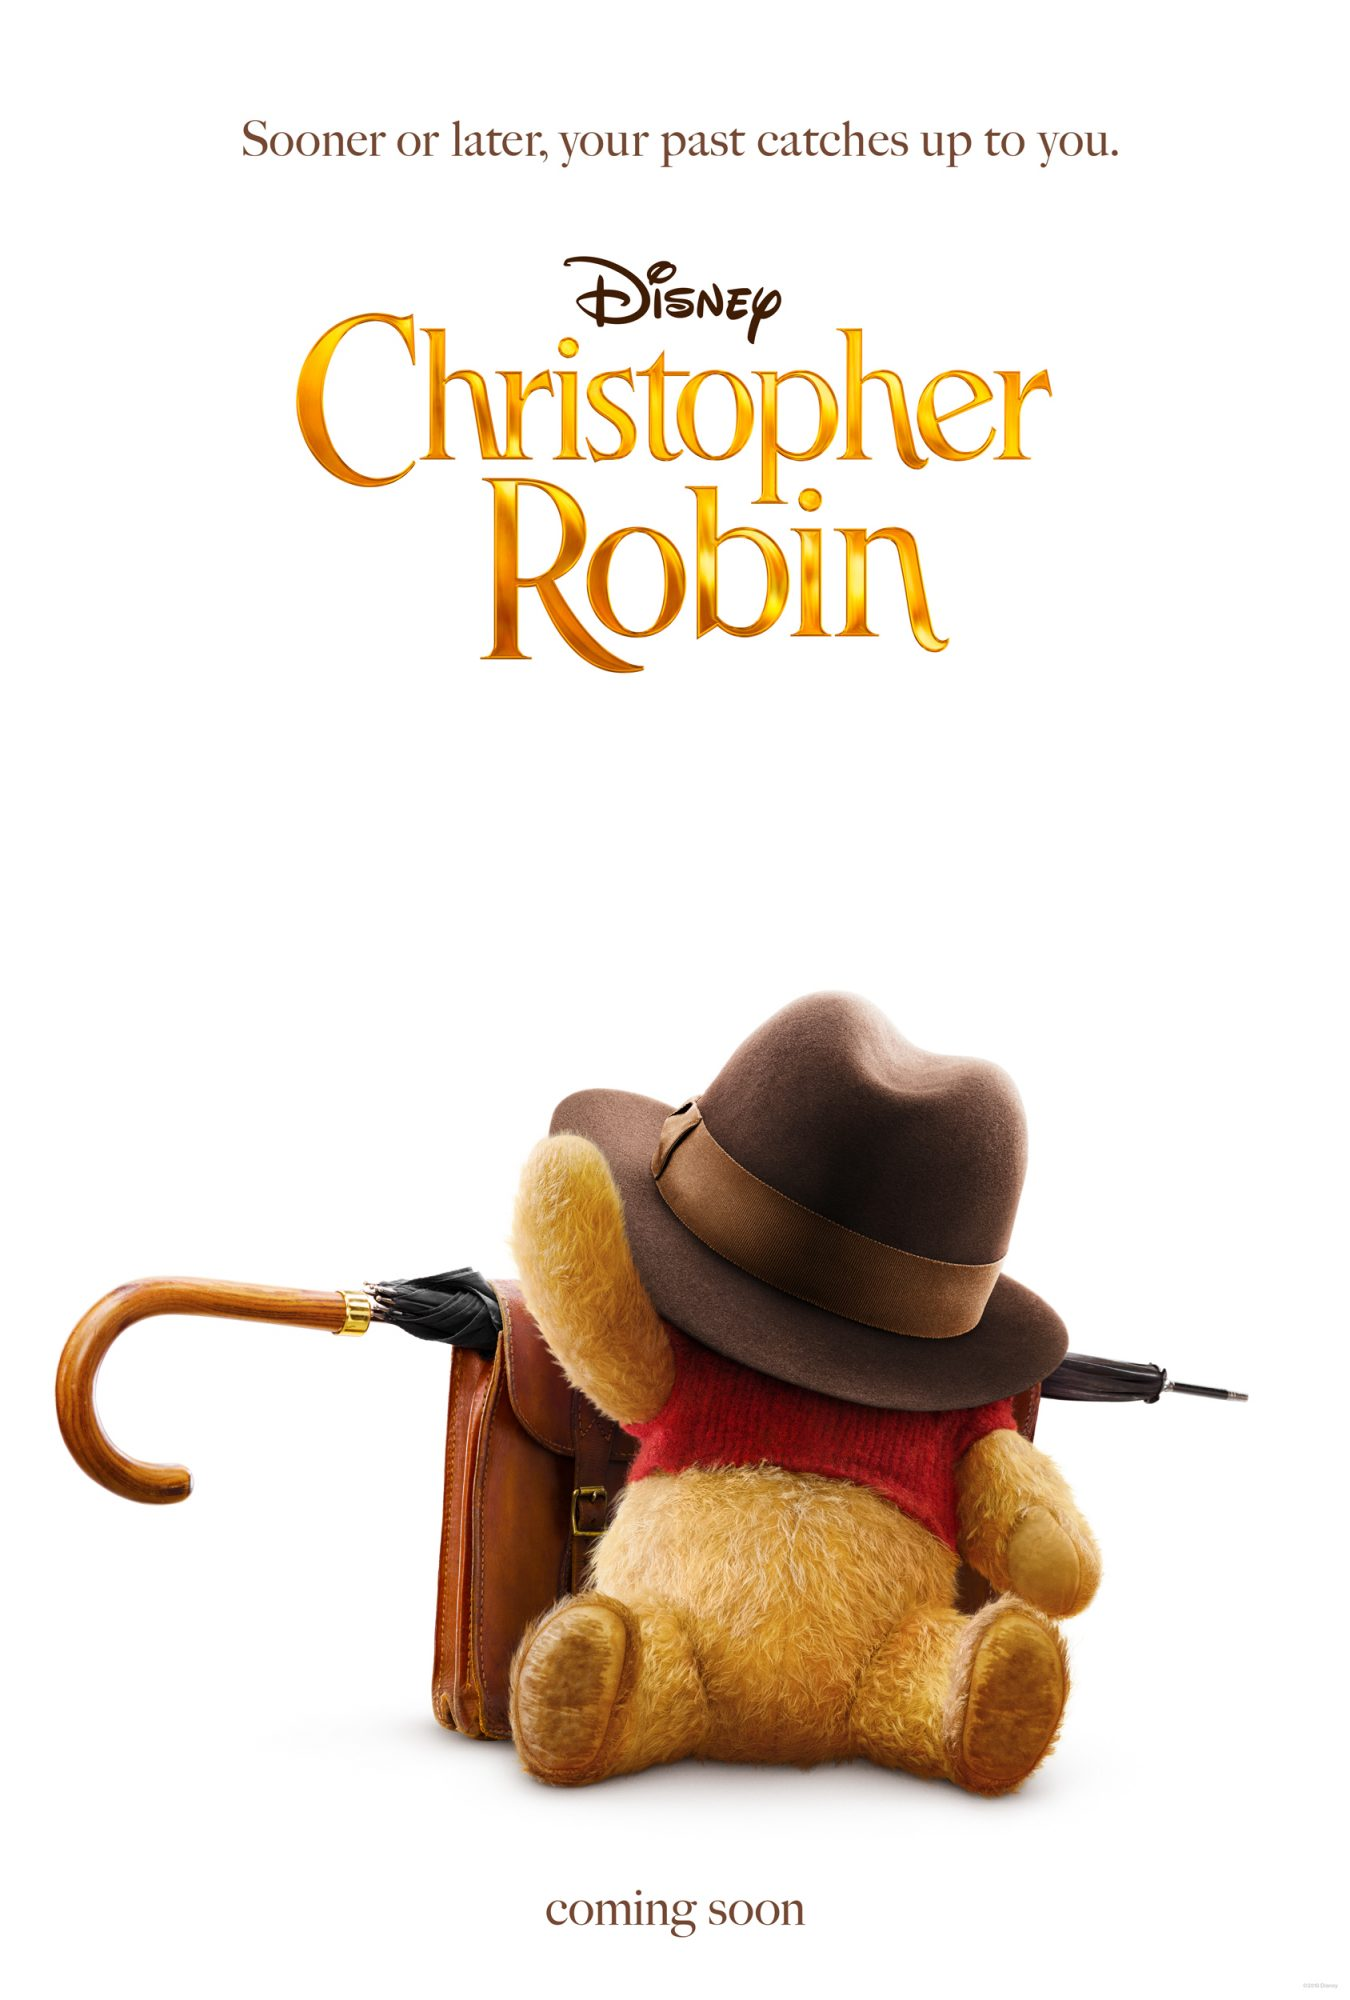 Winnie the Pooh visits an old friend in first Christopher Robintrailer cr_teaser_1-sht_v6_lg